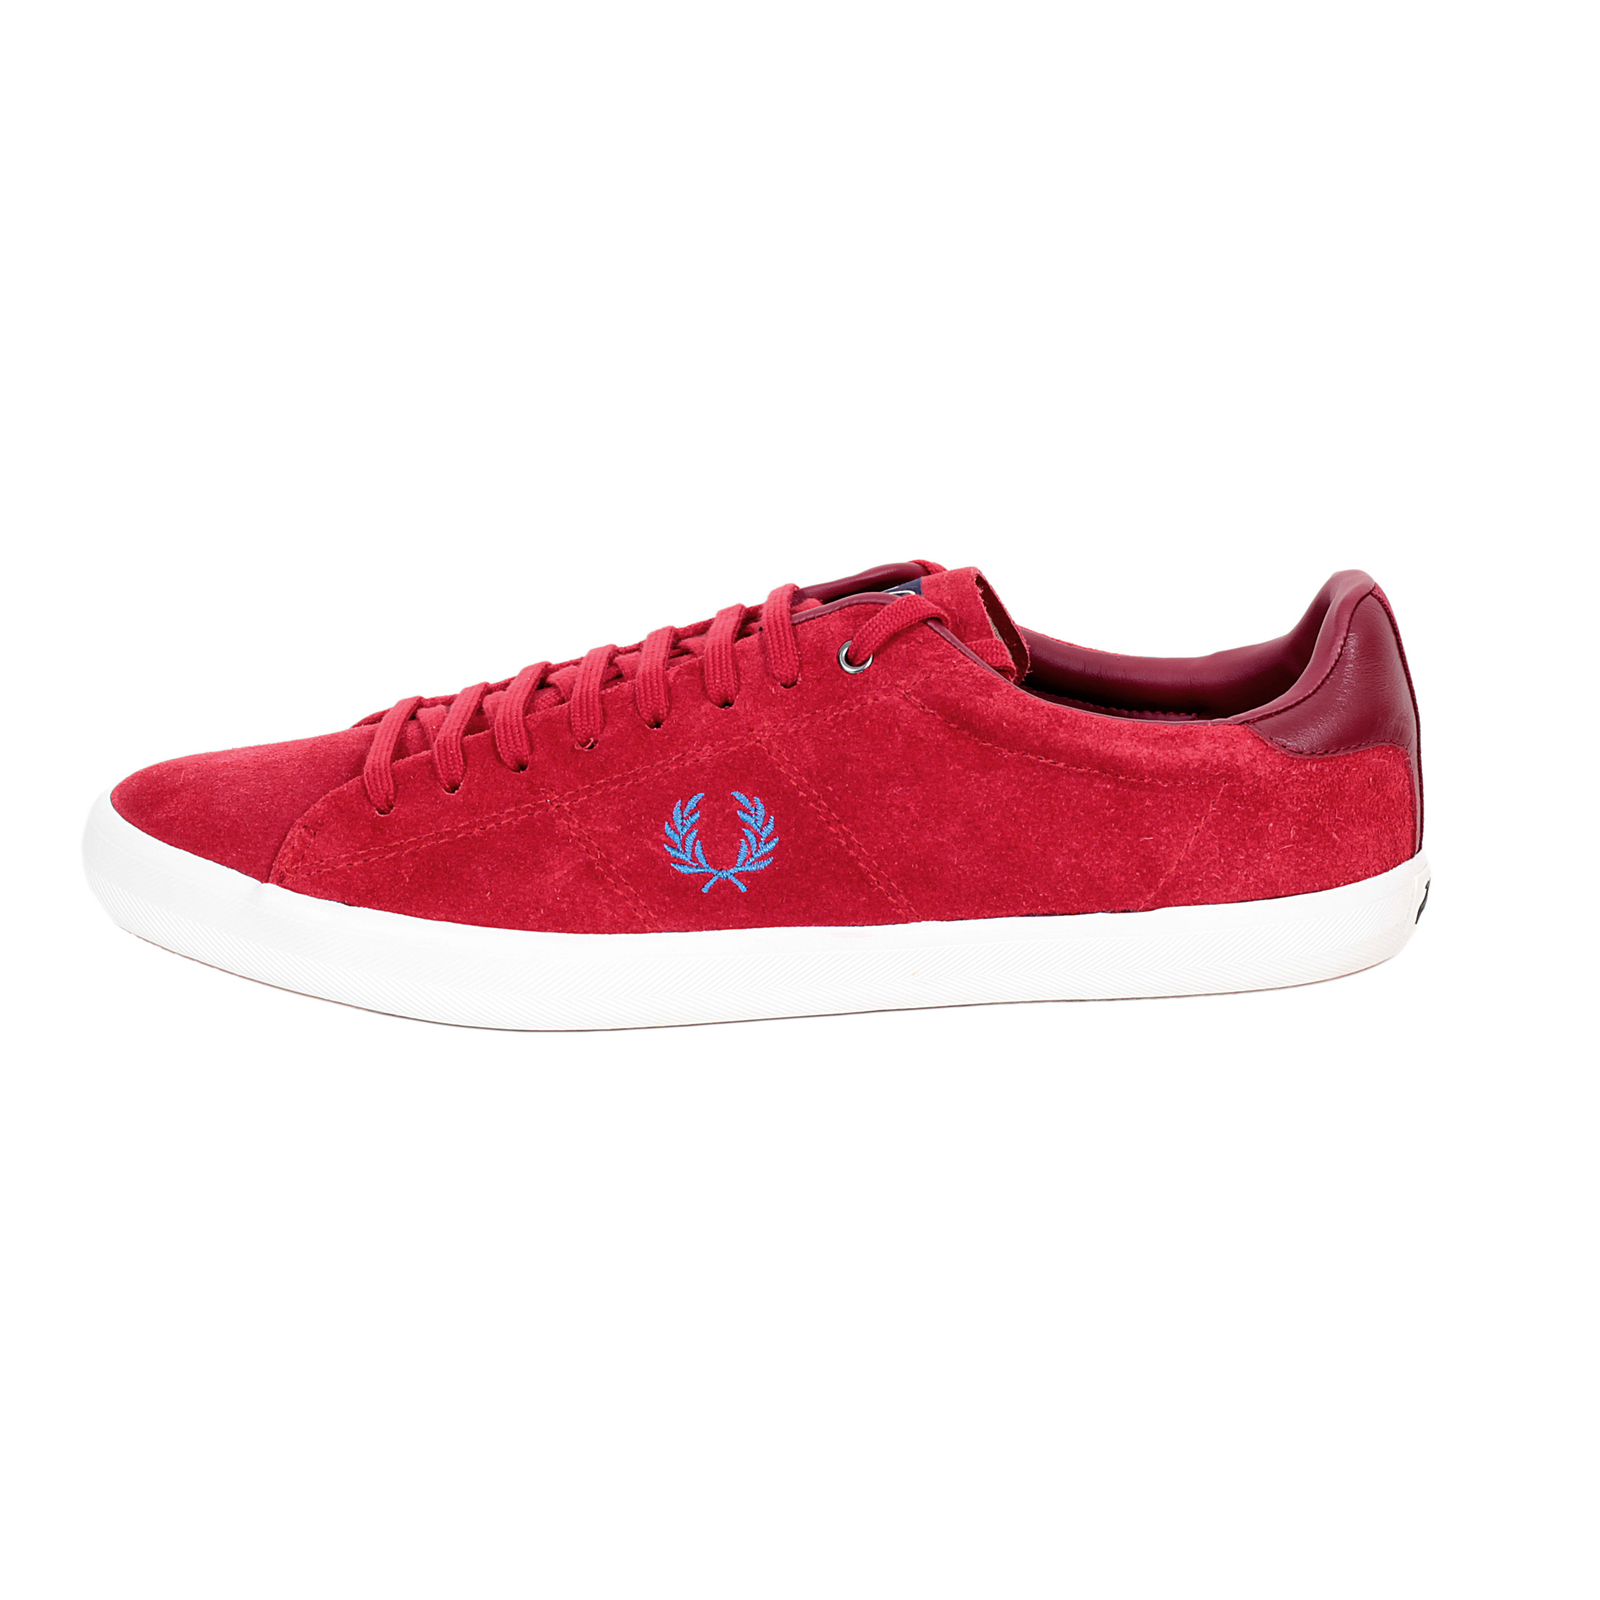 Fred Perry shoes red Howells unlined trainers B4211 FPRY3597 at Togged Clothing